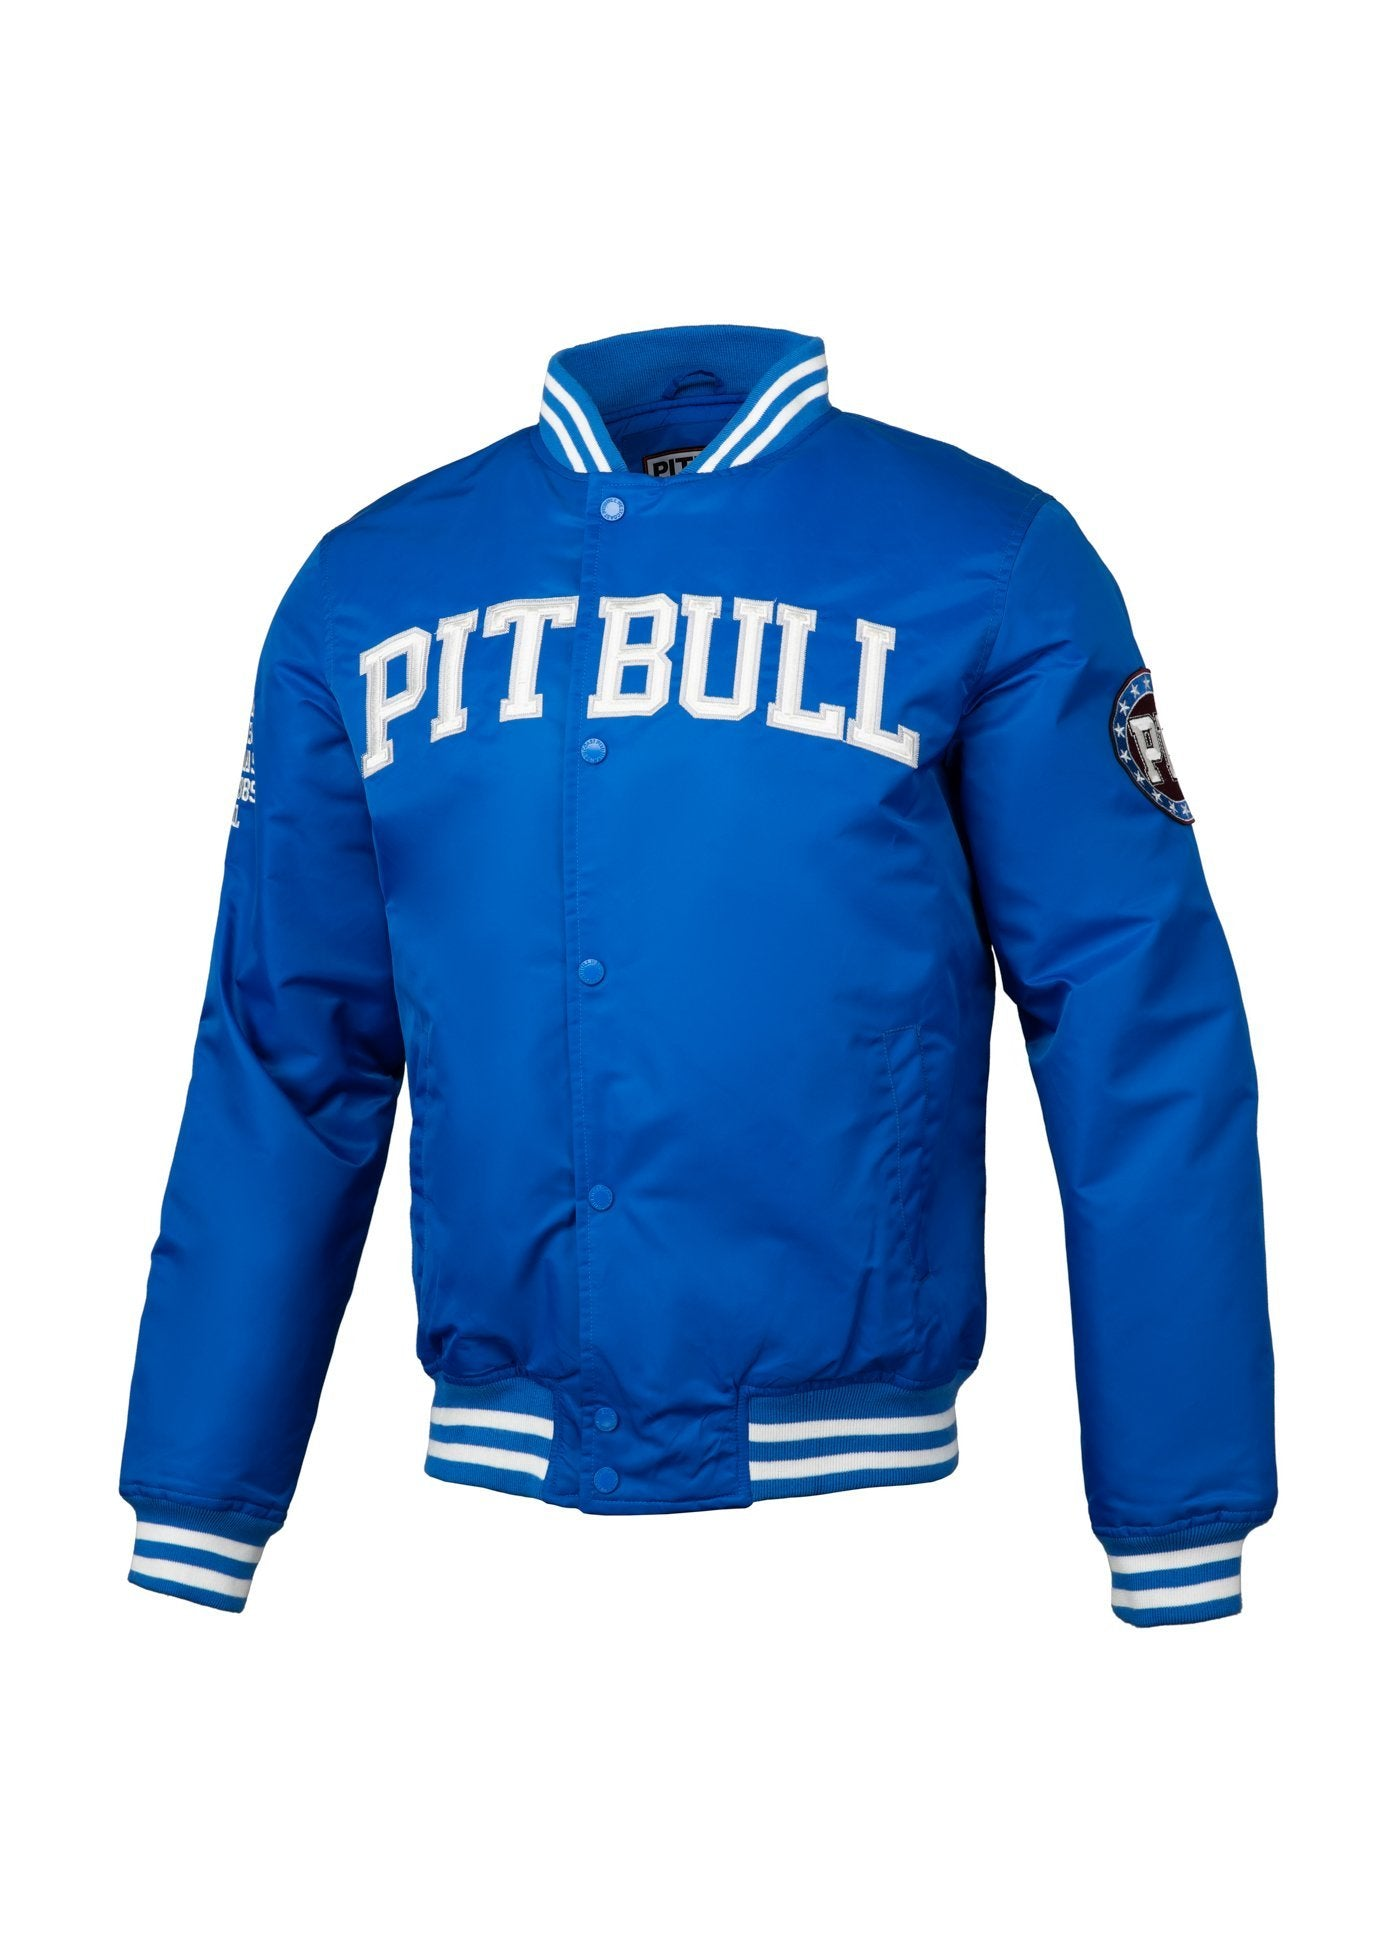 JACKET HERSON BLUE - Pitbull West Coast U.S.A.